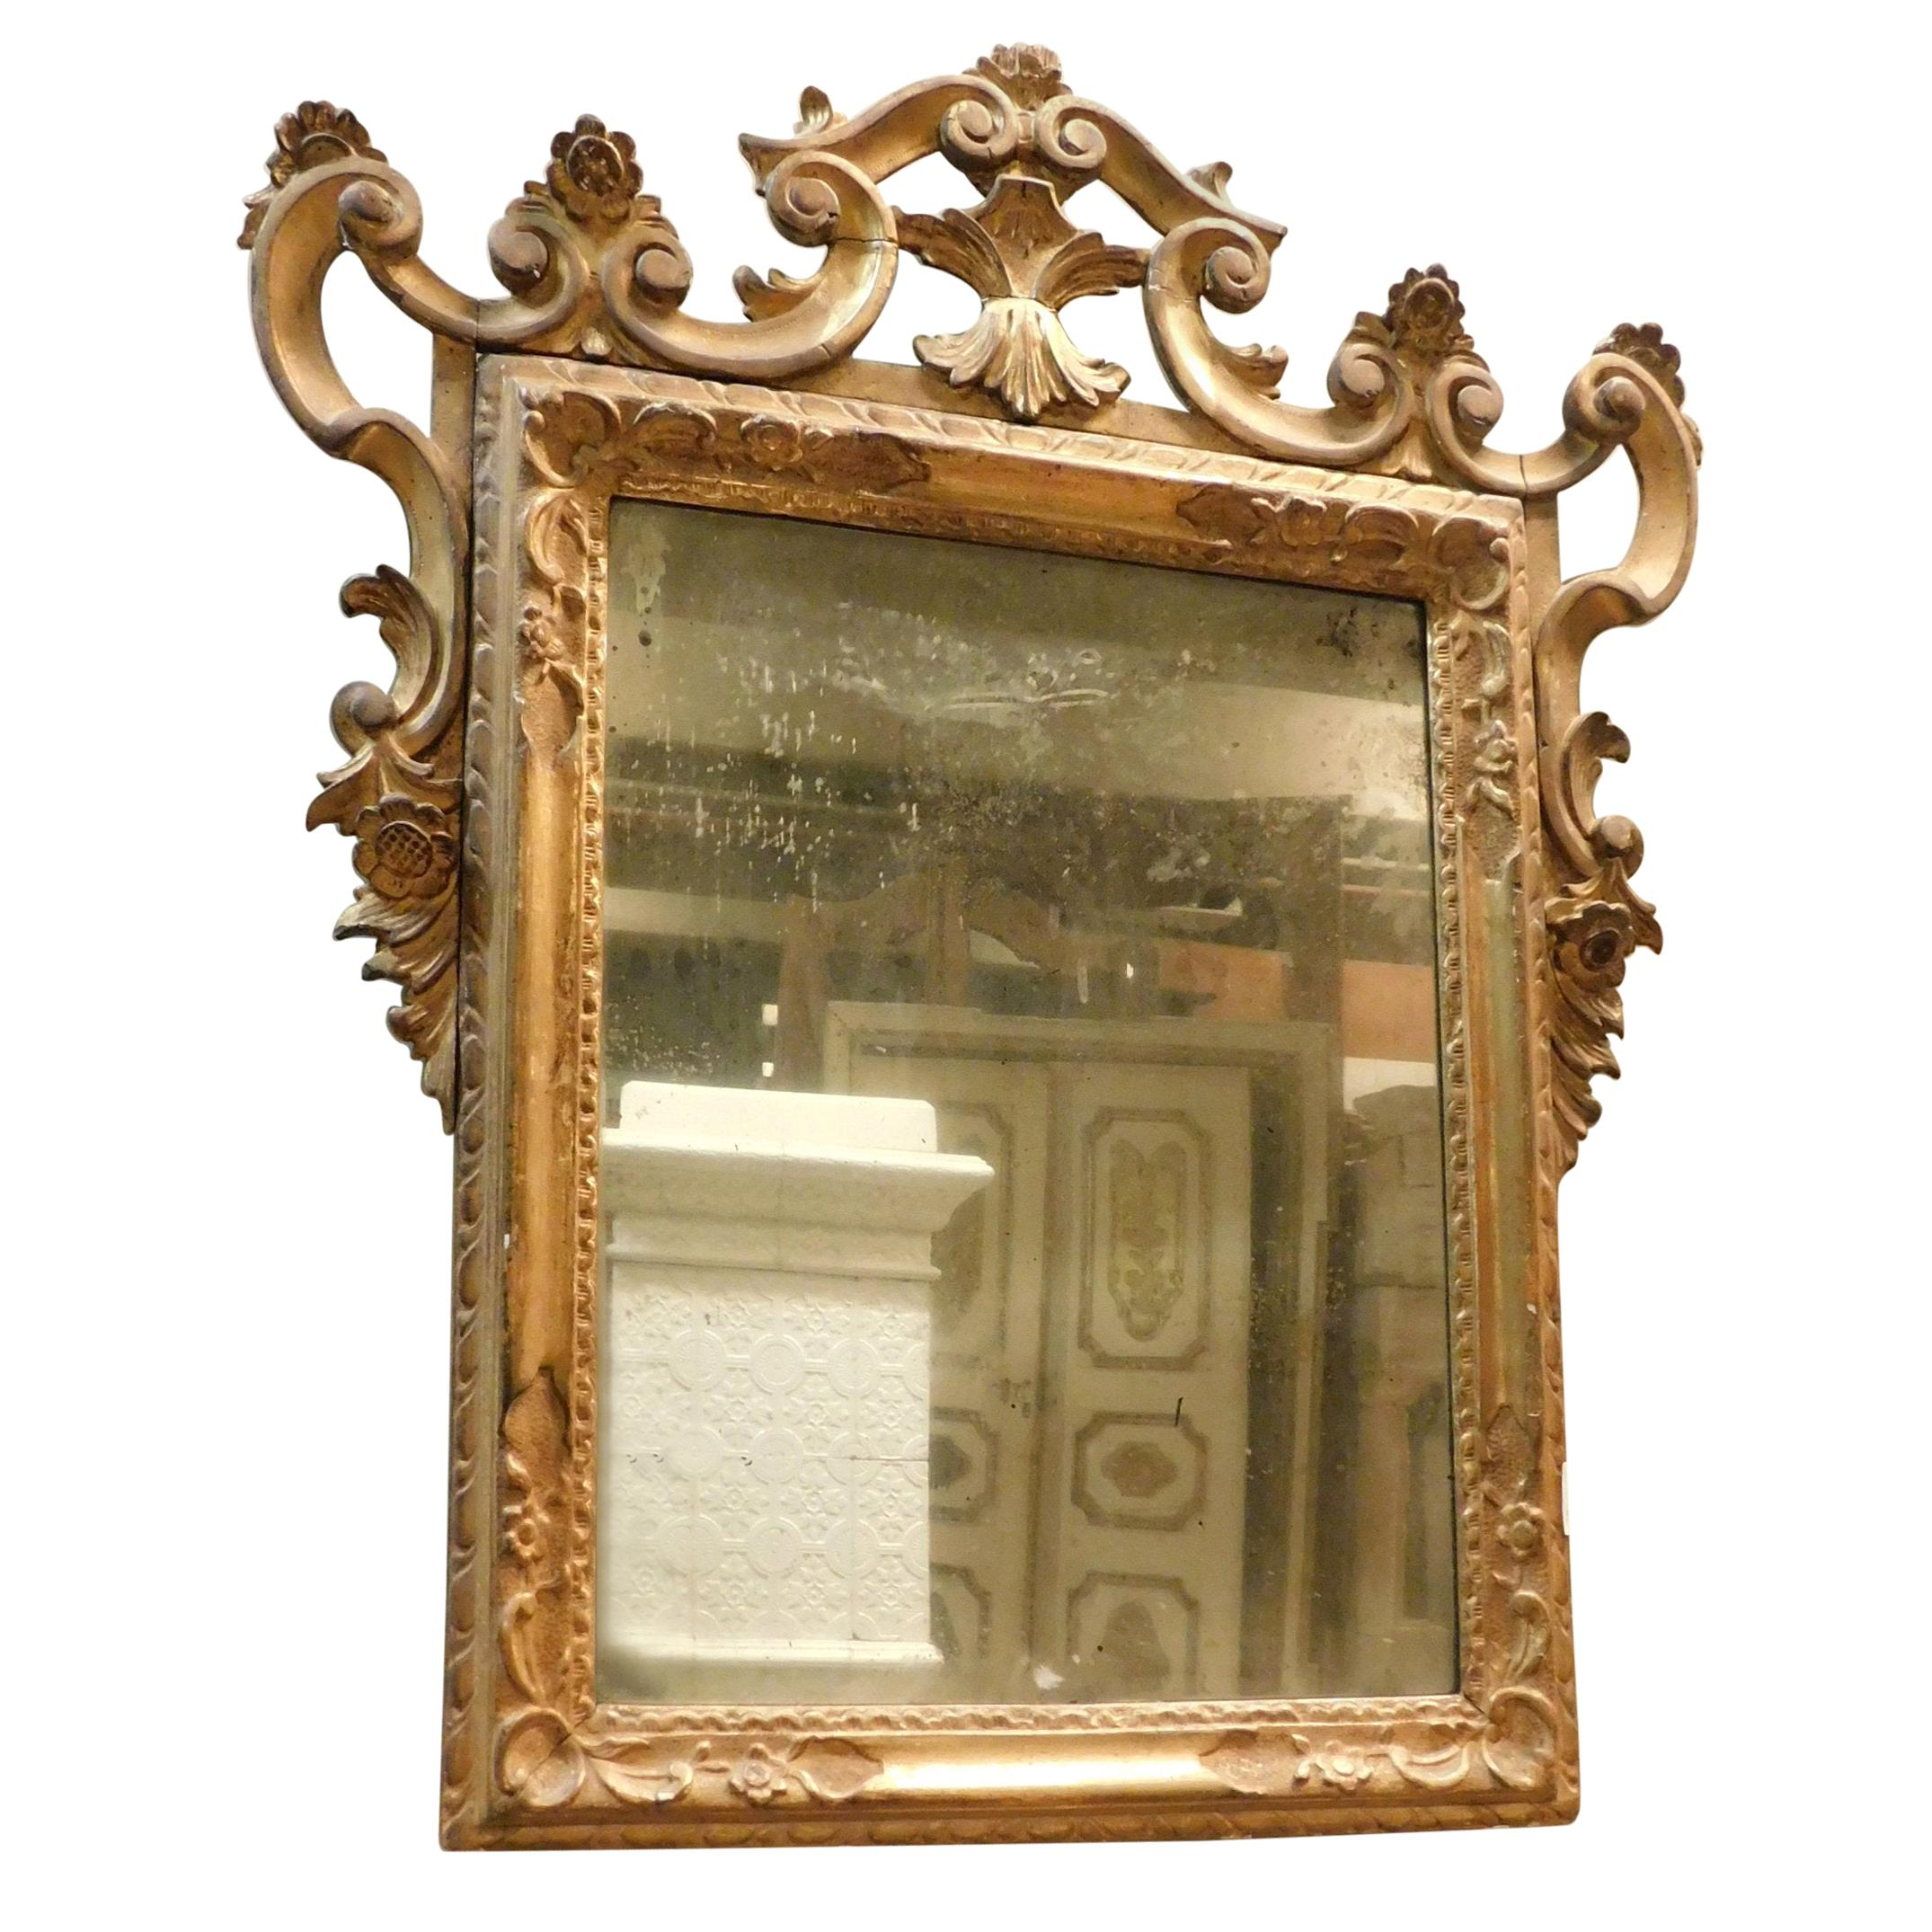 Antique Gilded Mirror with Carved Wood Carvings, 18th Century, Italy